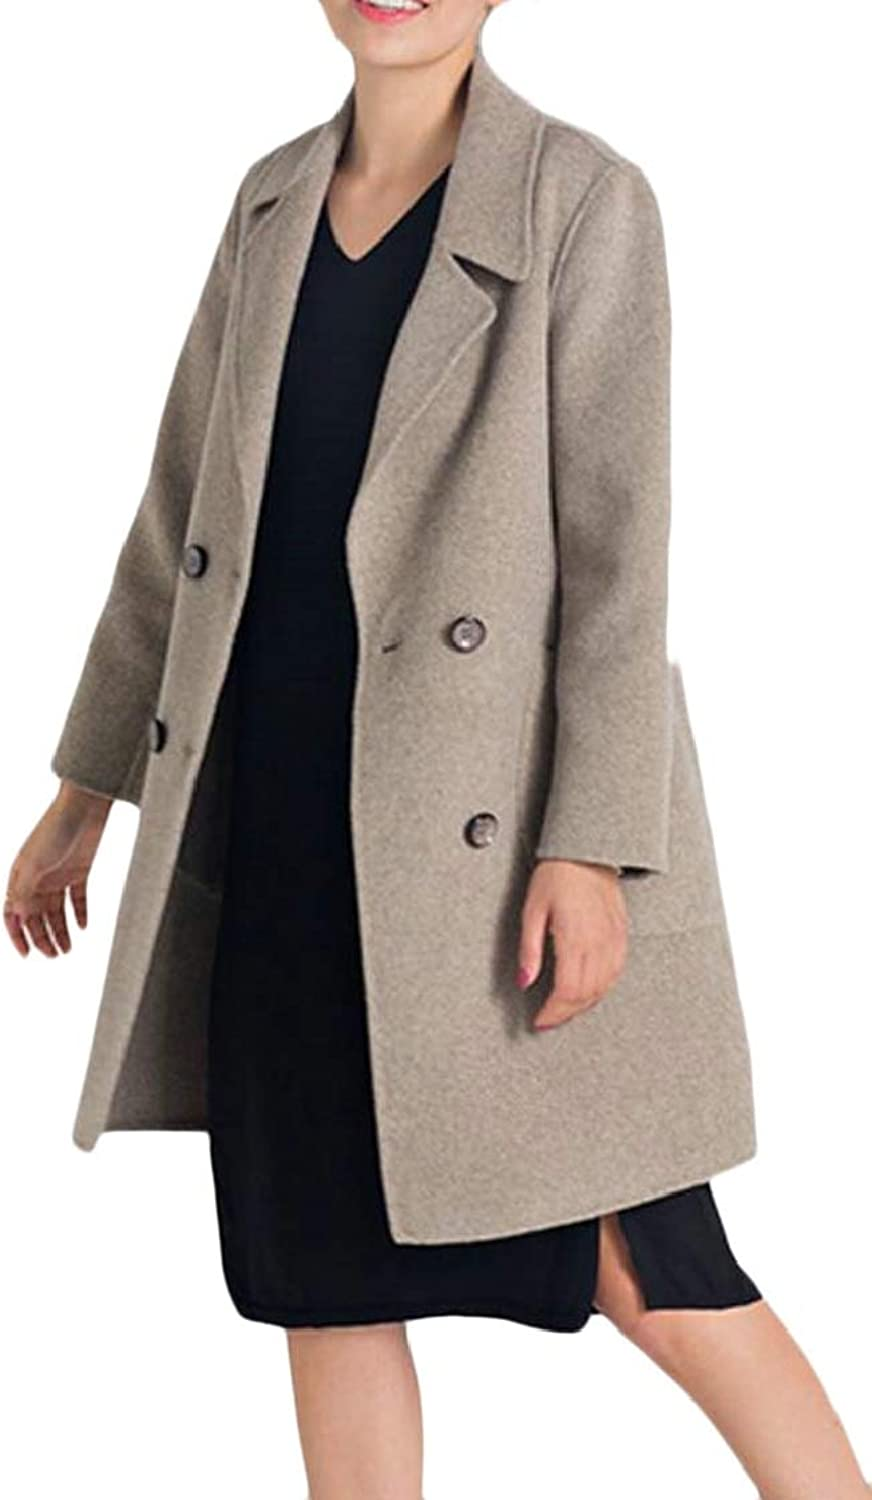 Gocgt Women's Casual Notch Lapel Double Breasted Wool Trench Coat Overcoat